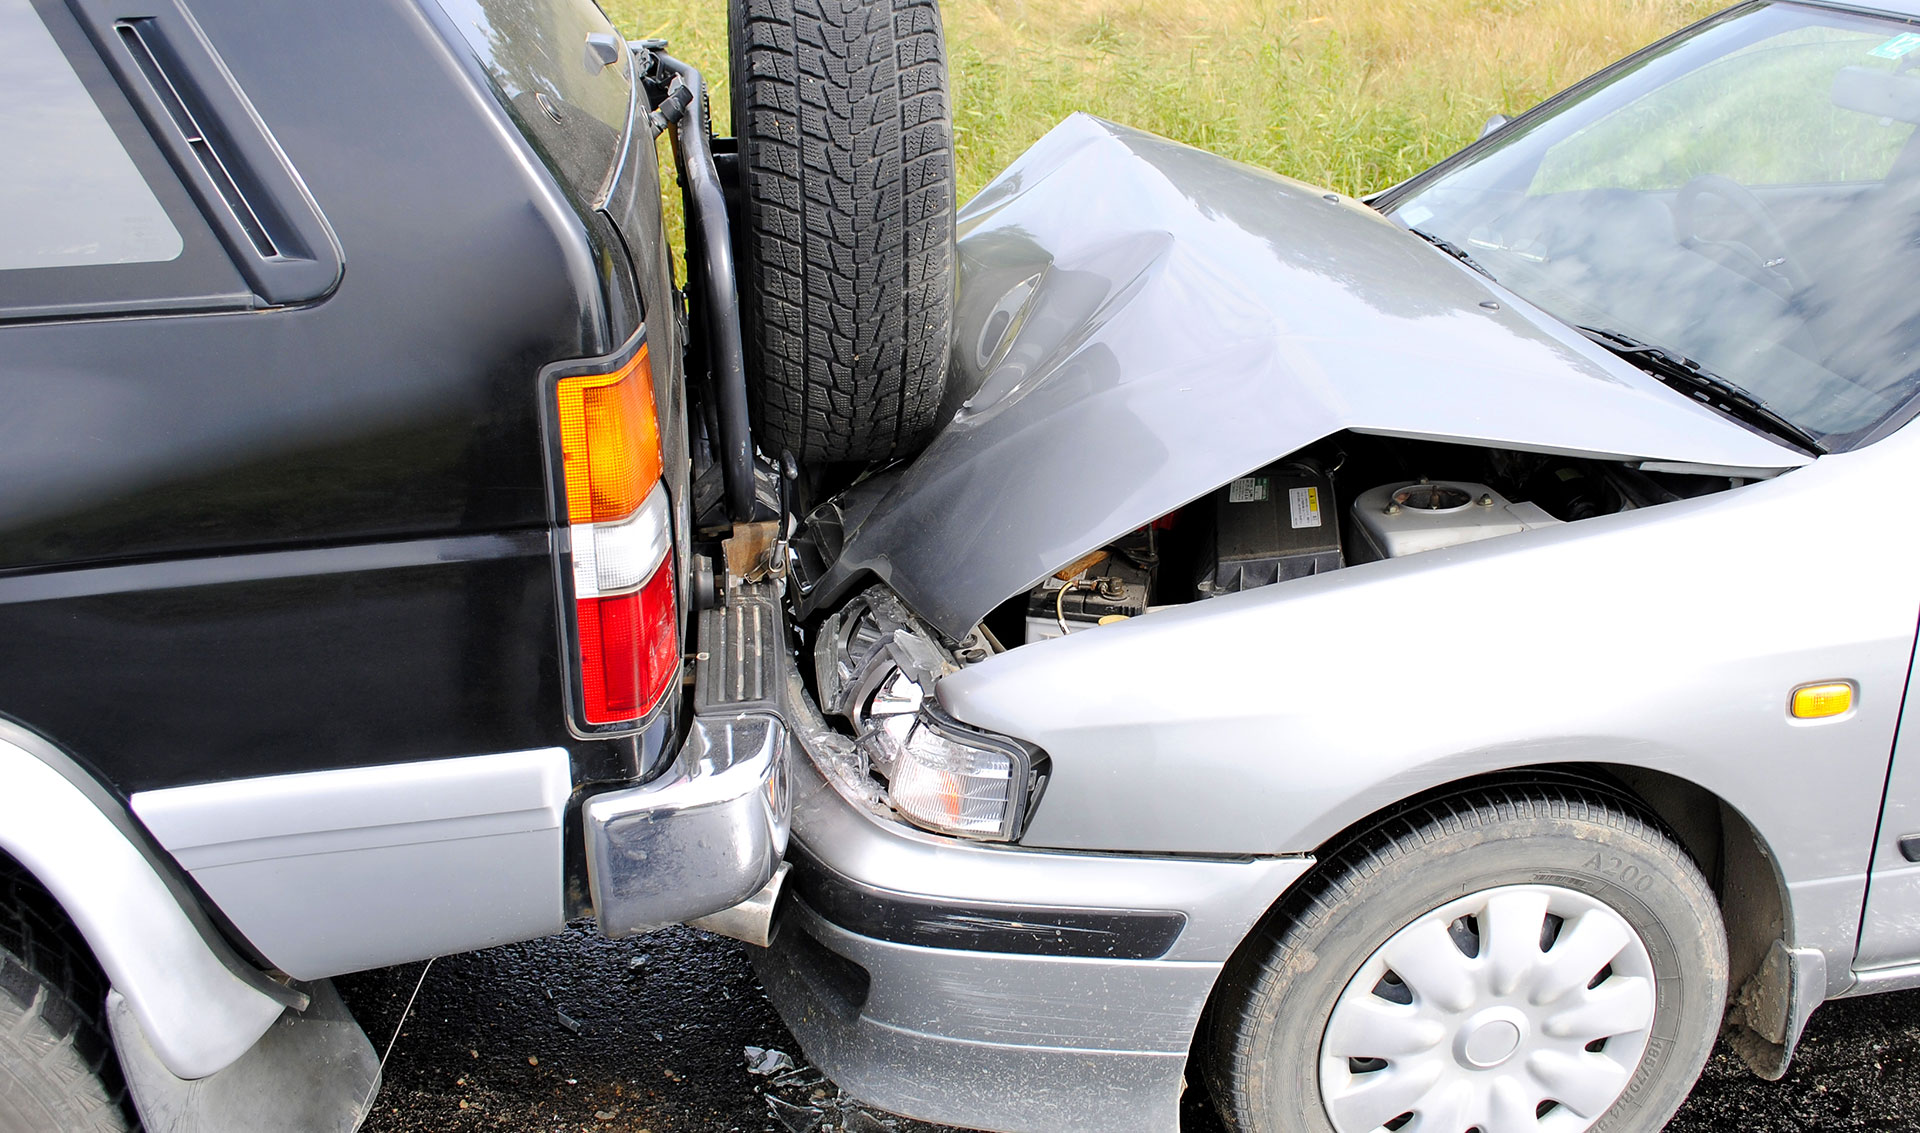 A car in a rear-end collision.